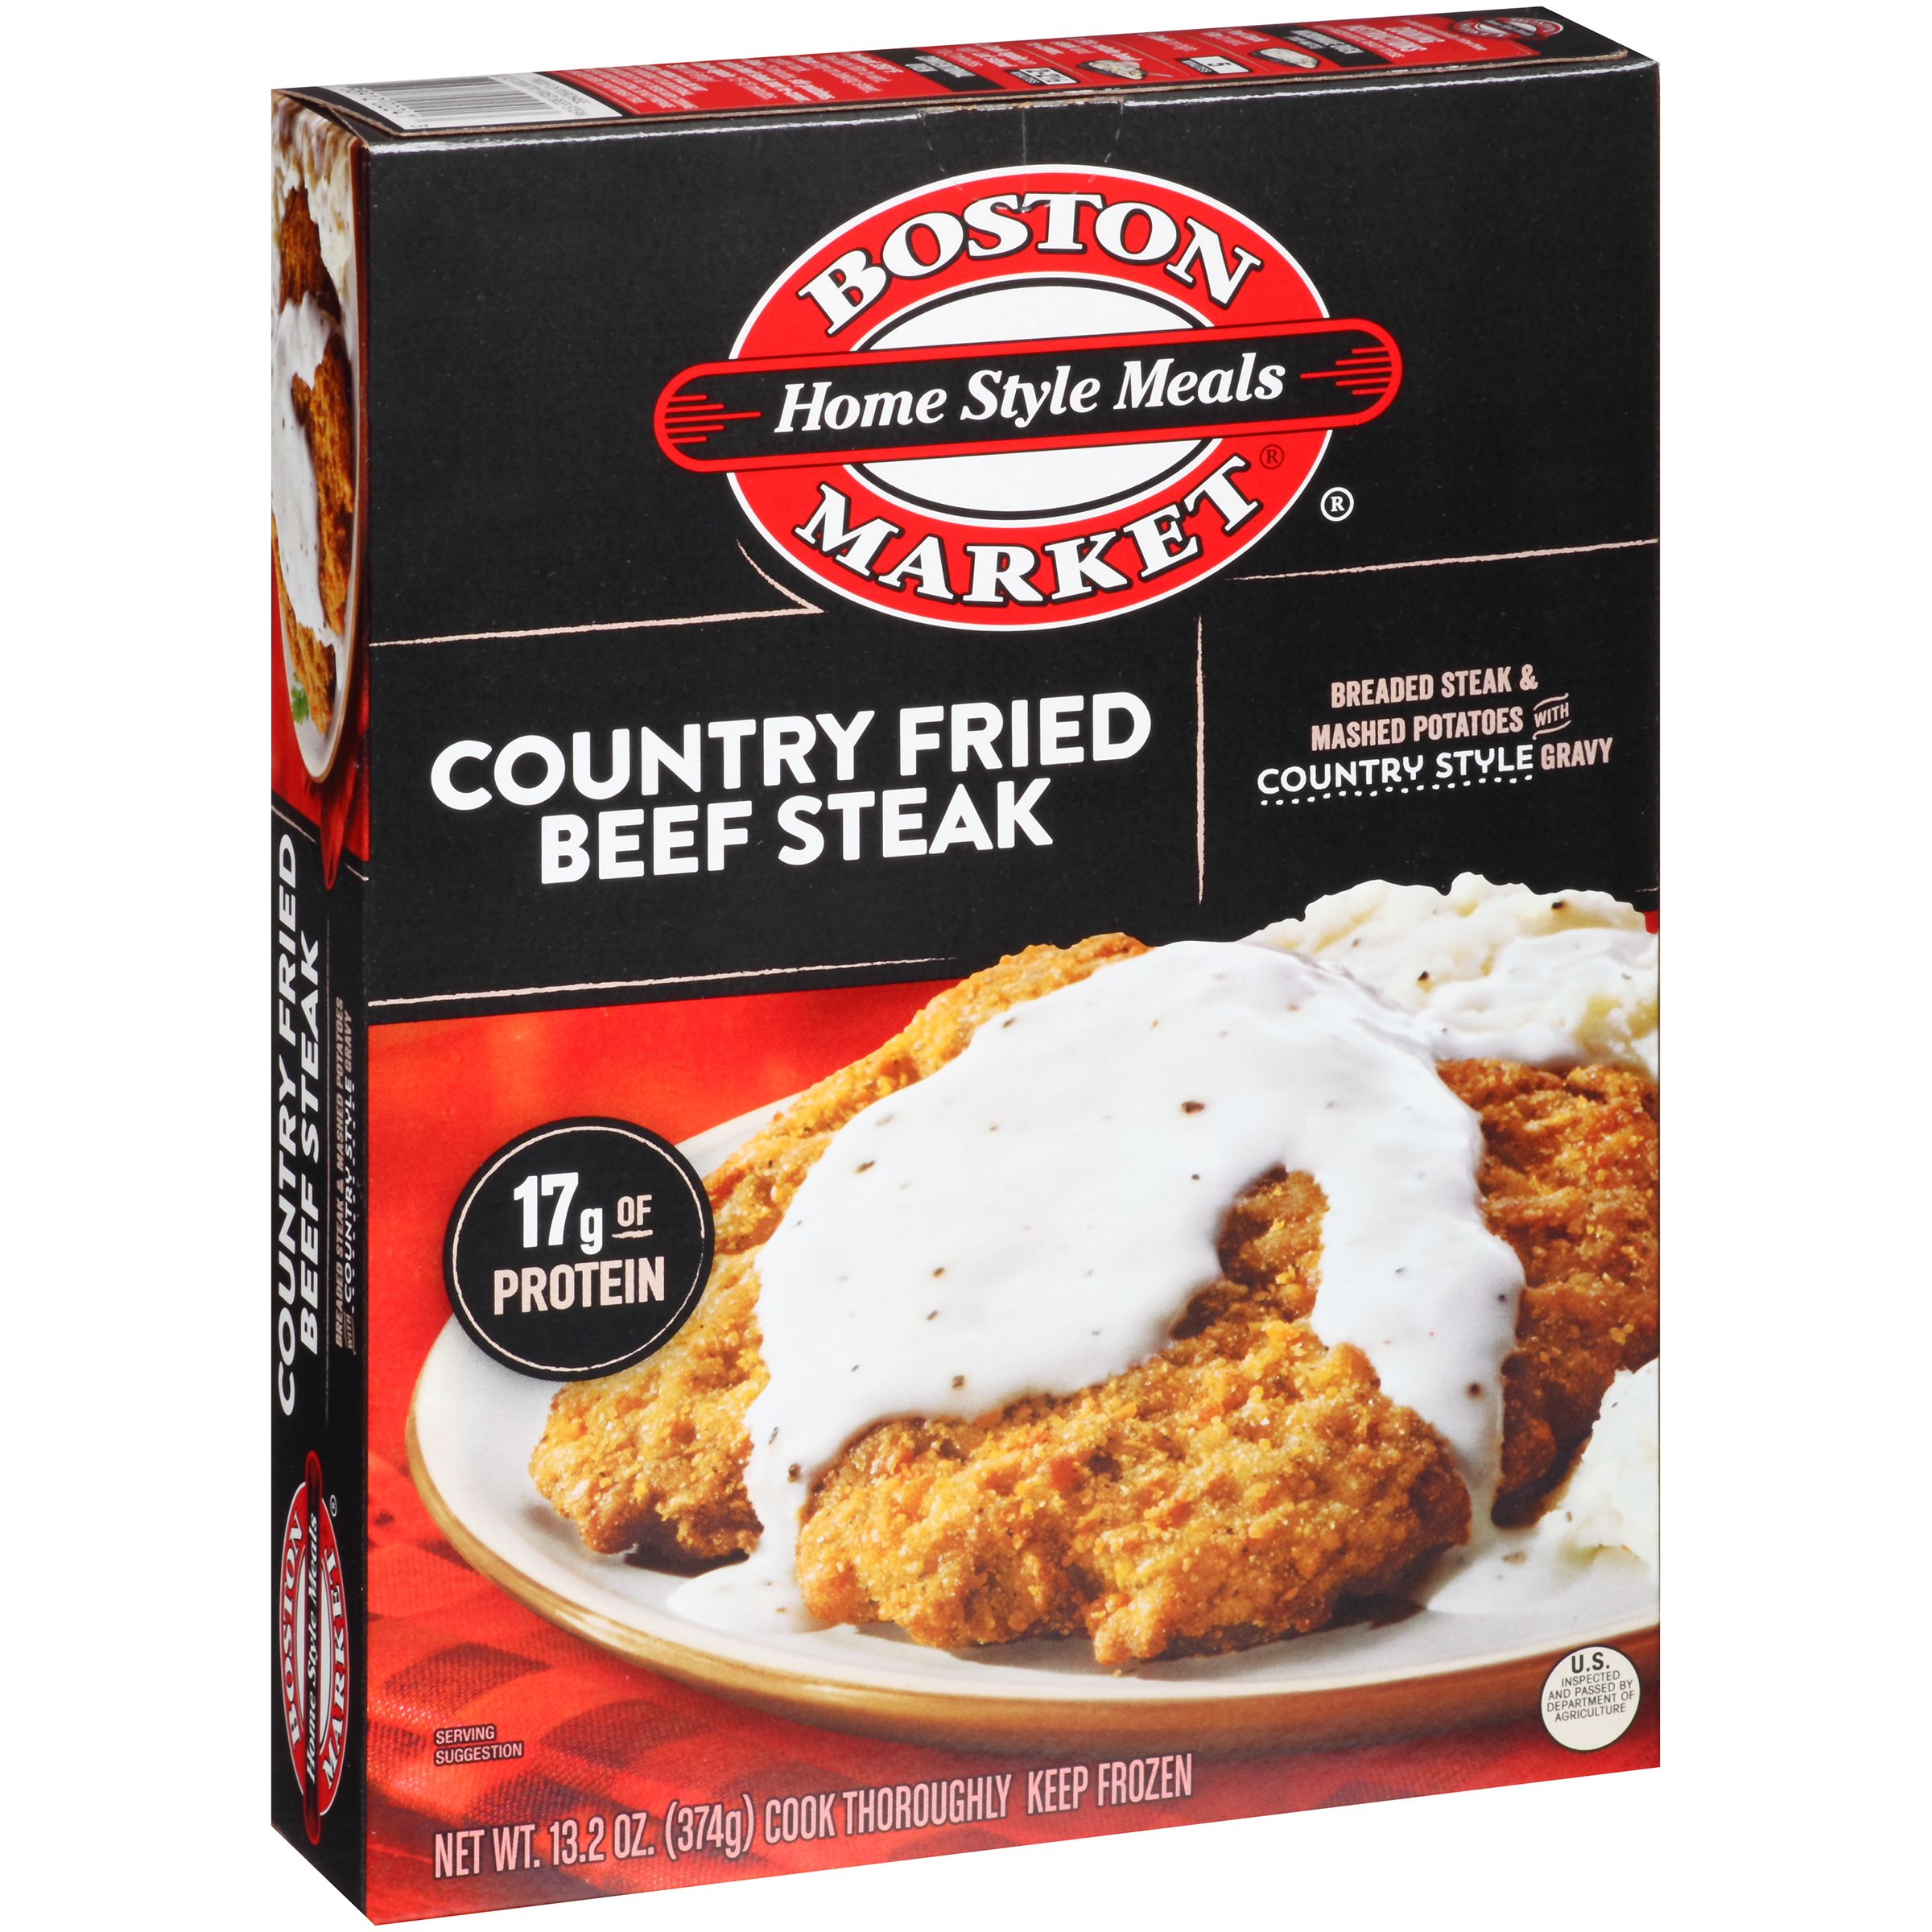 Boston Market�� Home Style Meals Country Fried Beef Steak 13.2 oz. Box